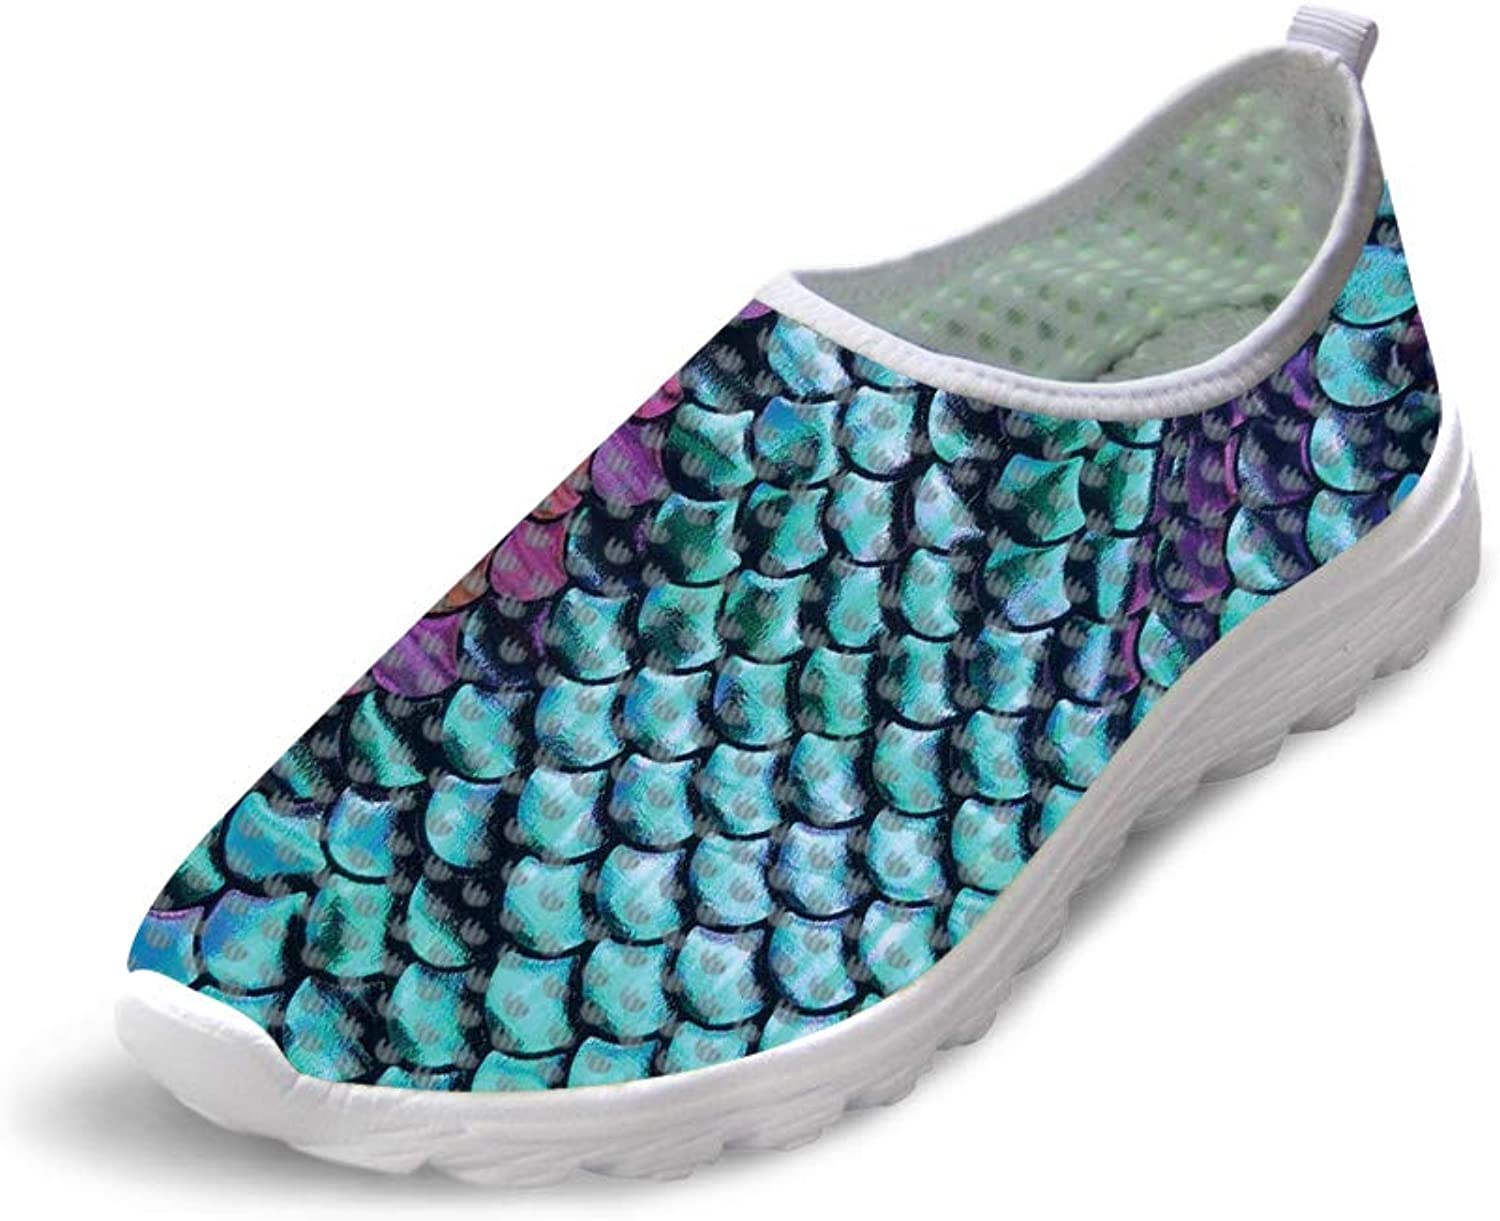 Owaheson Trail Runner Running shoes Casual Sneakers Paint Purple Green Fish Scales